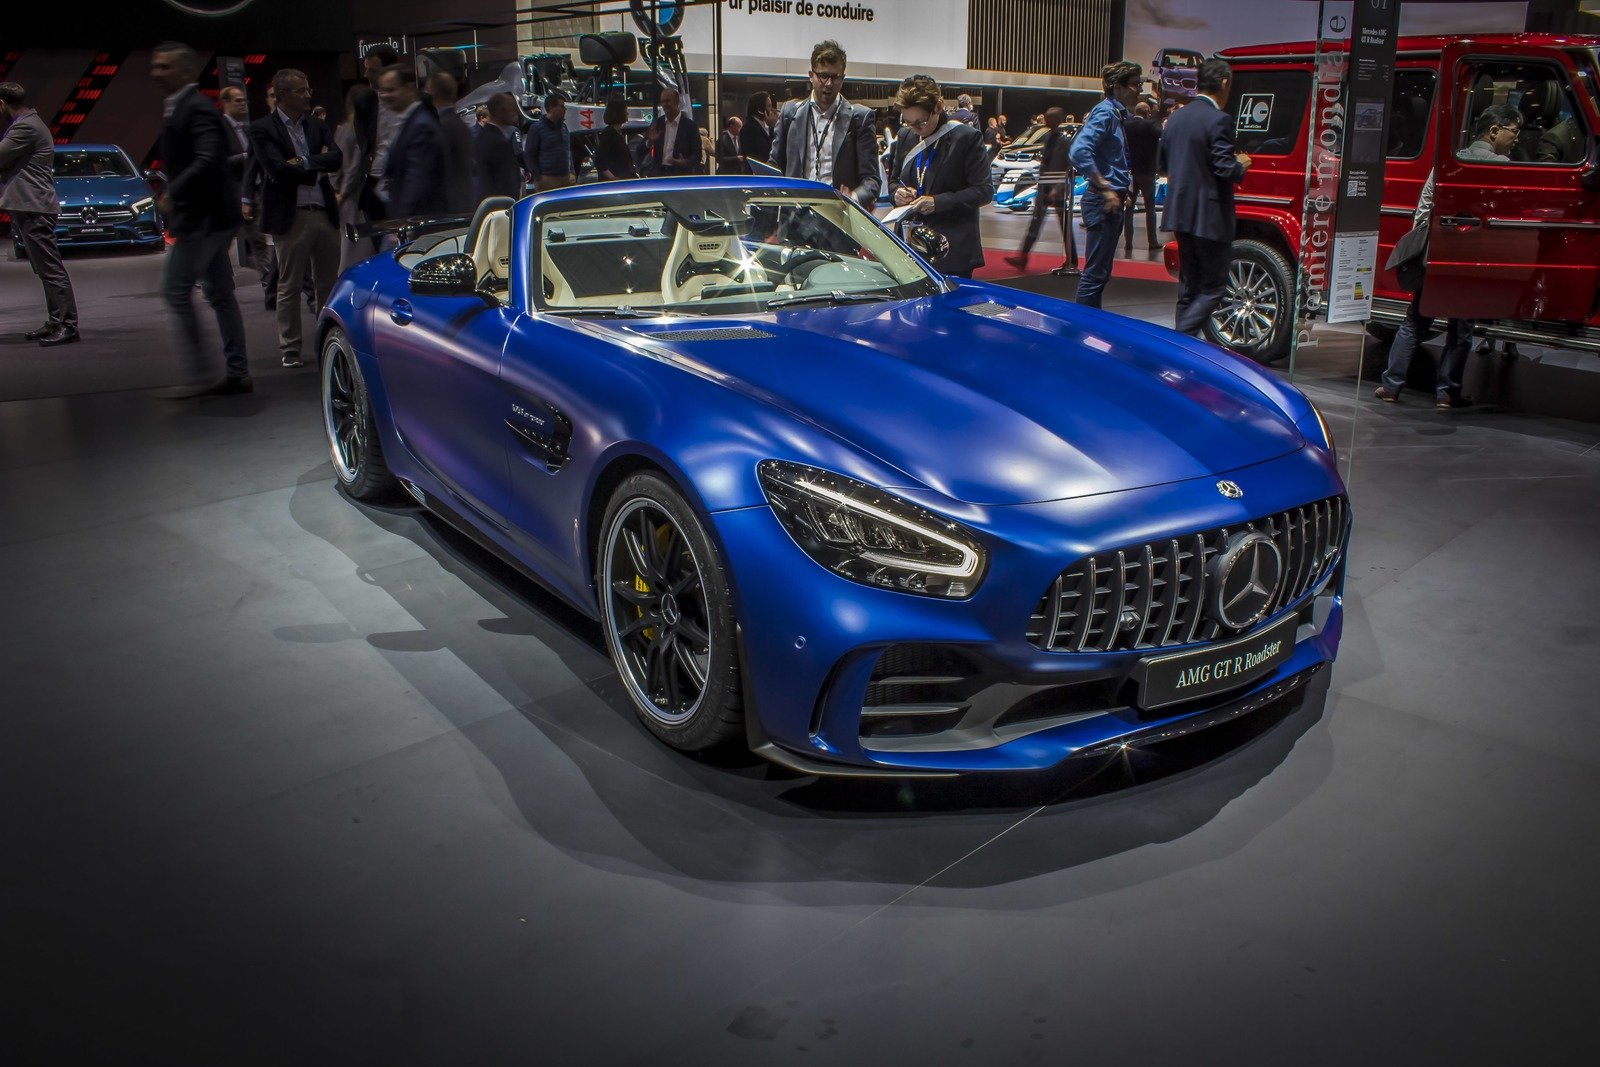 2019 Mercedes-AMG GT R Roadster Pictures, Photos ...